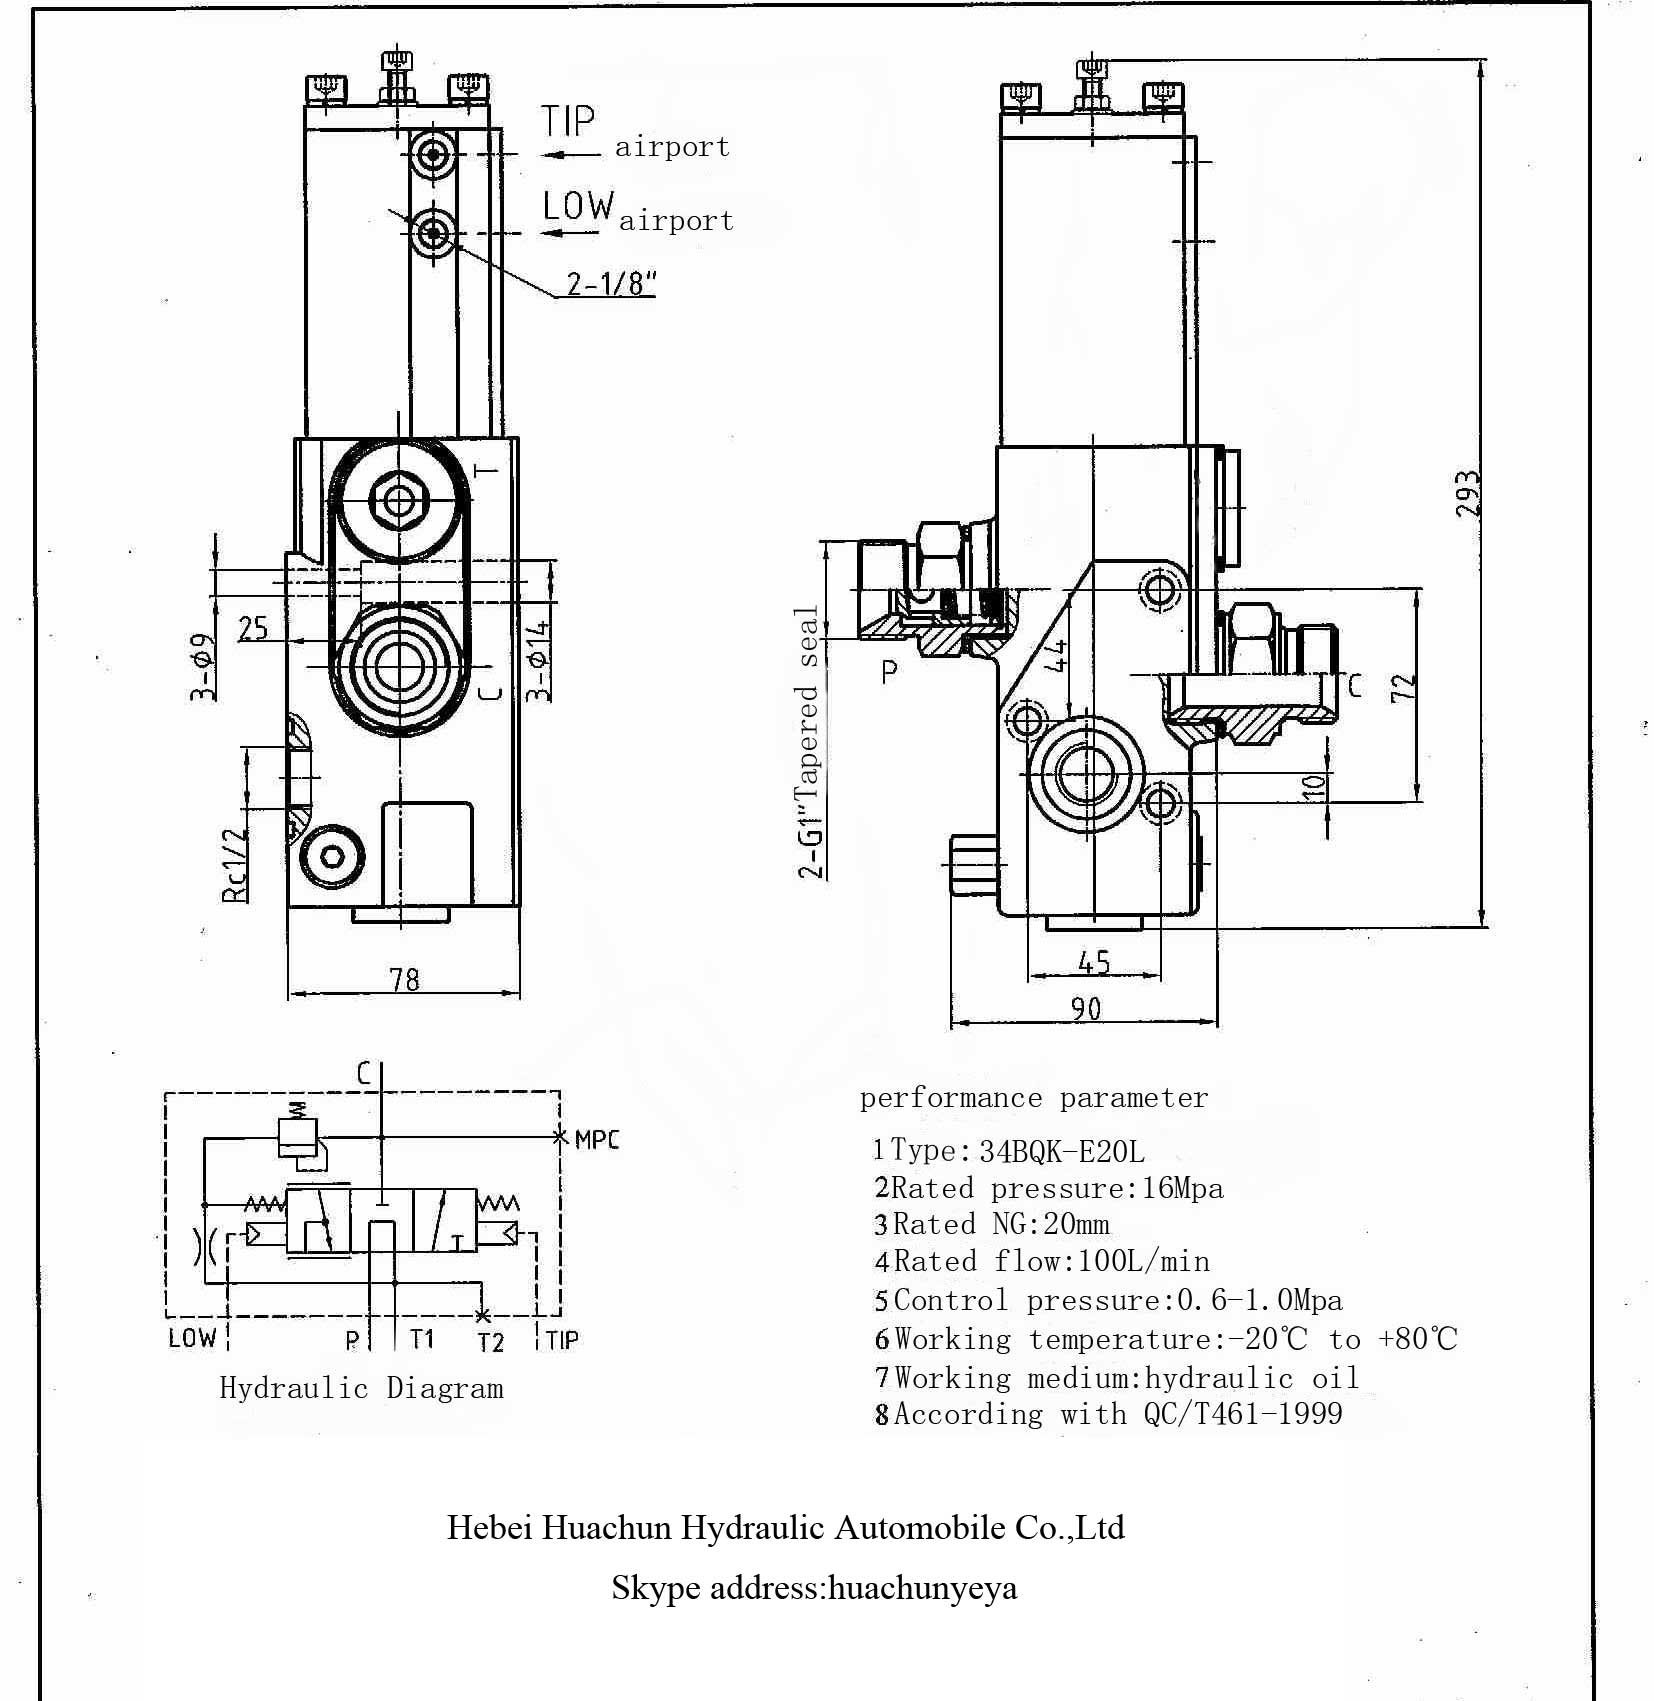 wiring diagram together with 2006 ford f550 trailer wiring diagram